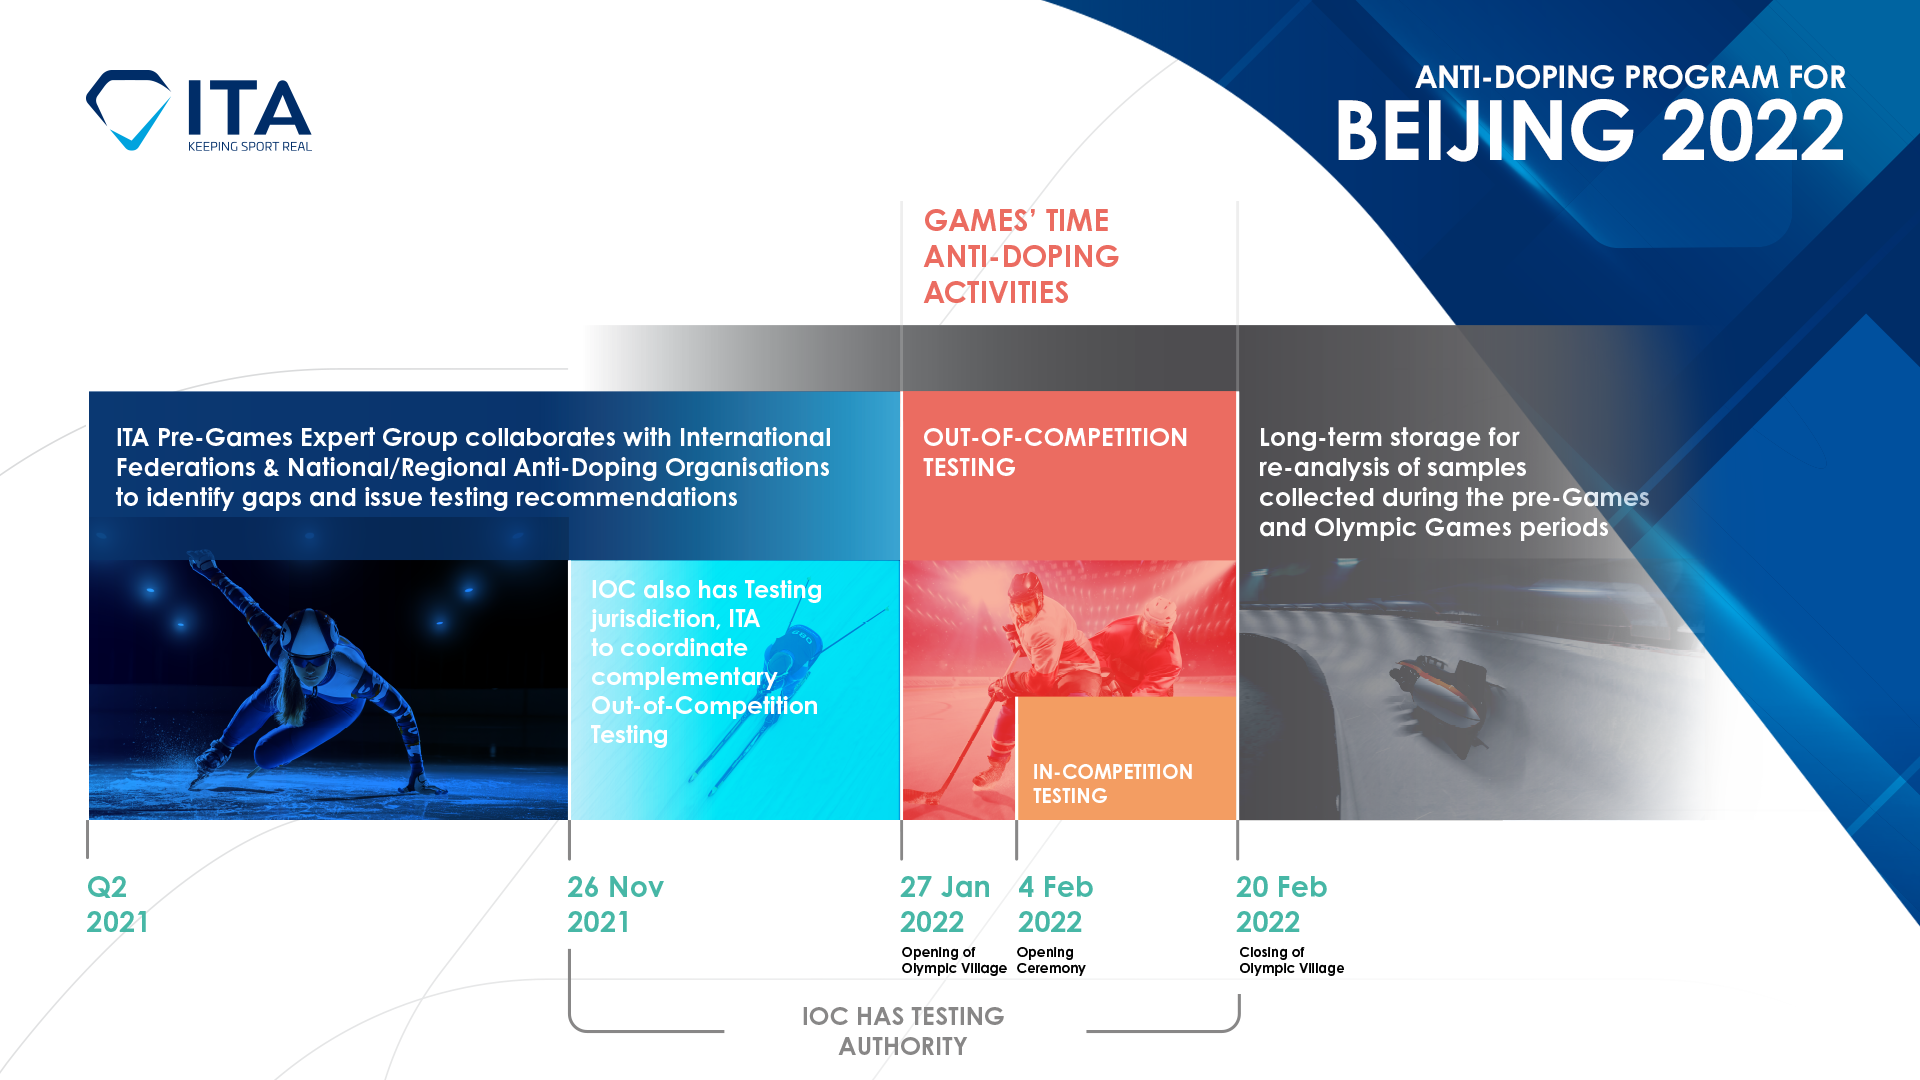 Turning the focus to Beijing: The ITA launches the pre-Games anti-doping program for the 2022 Olympic Winter Games